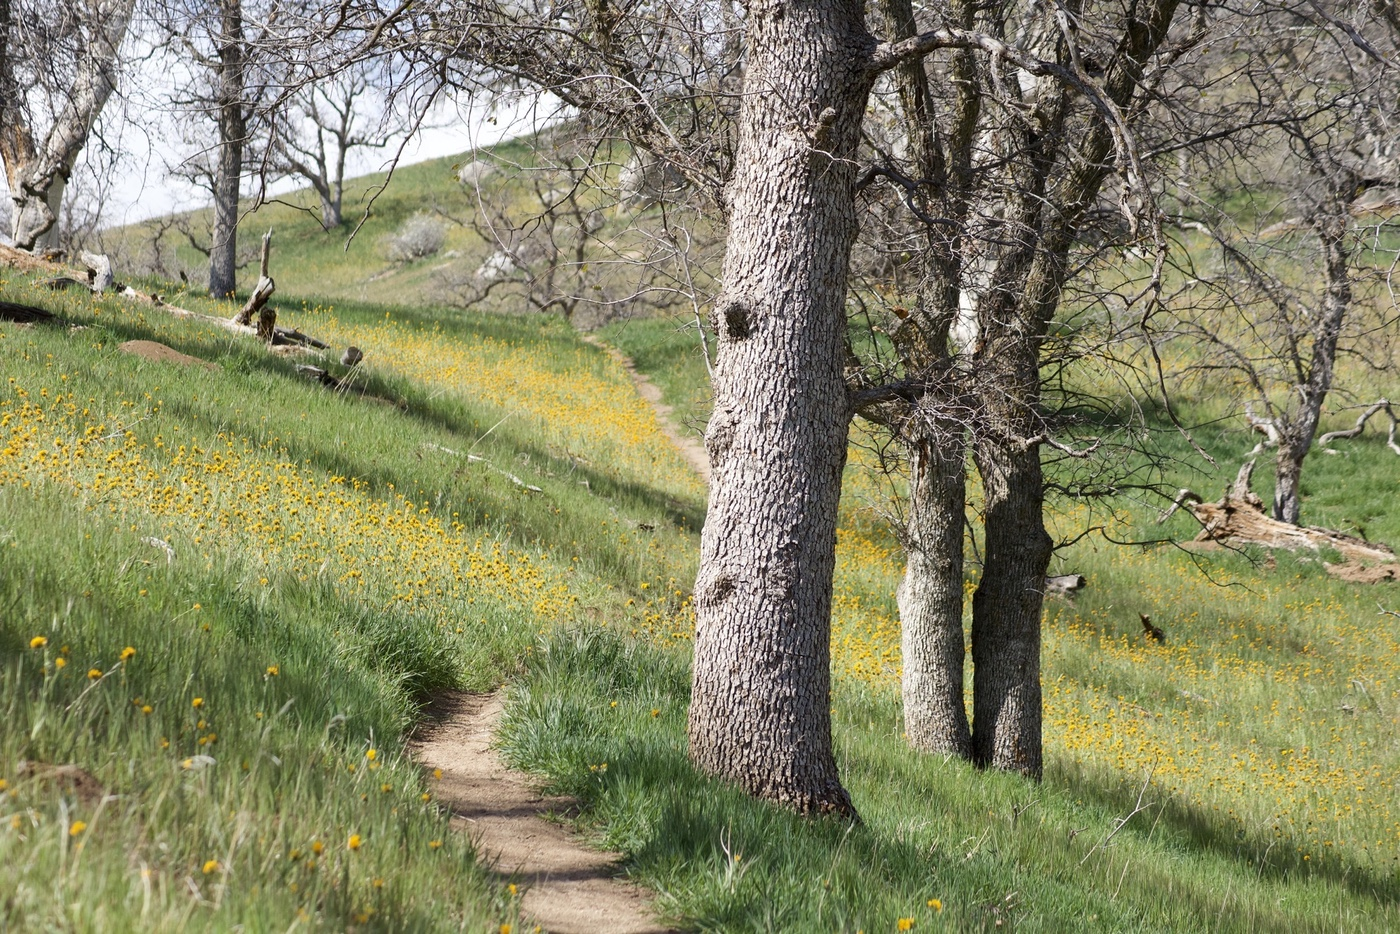 The Kern River Trail passing through some trees and wildflowers